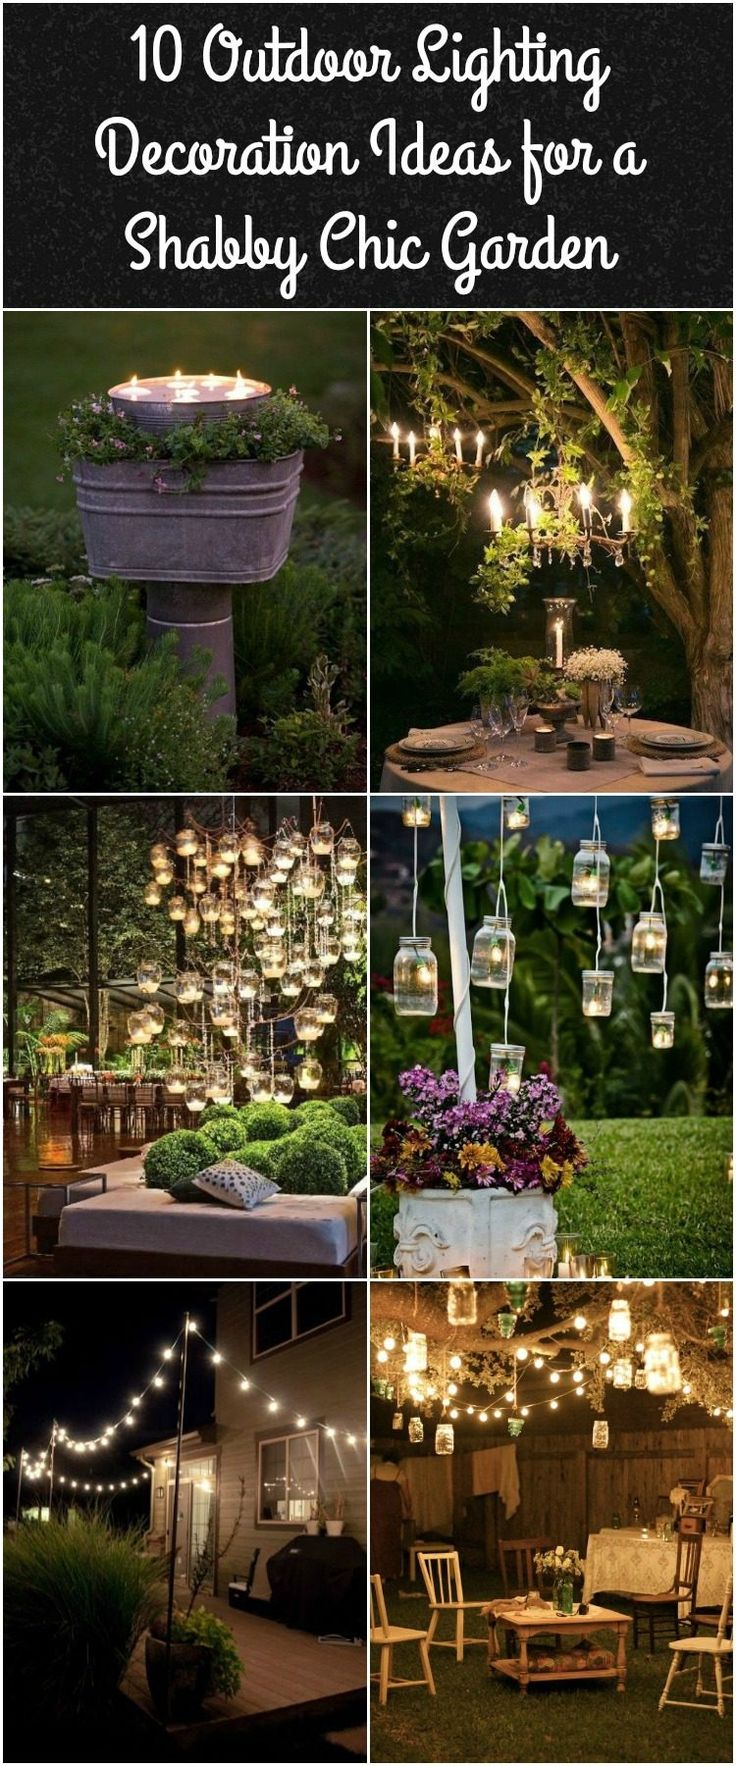 10 Outdoor Lighting Decoration Ideas for a Shabby Chic Garden. #6 is Lovely Outdoor Lighting, DIY, garden litining